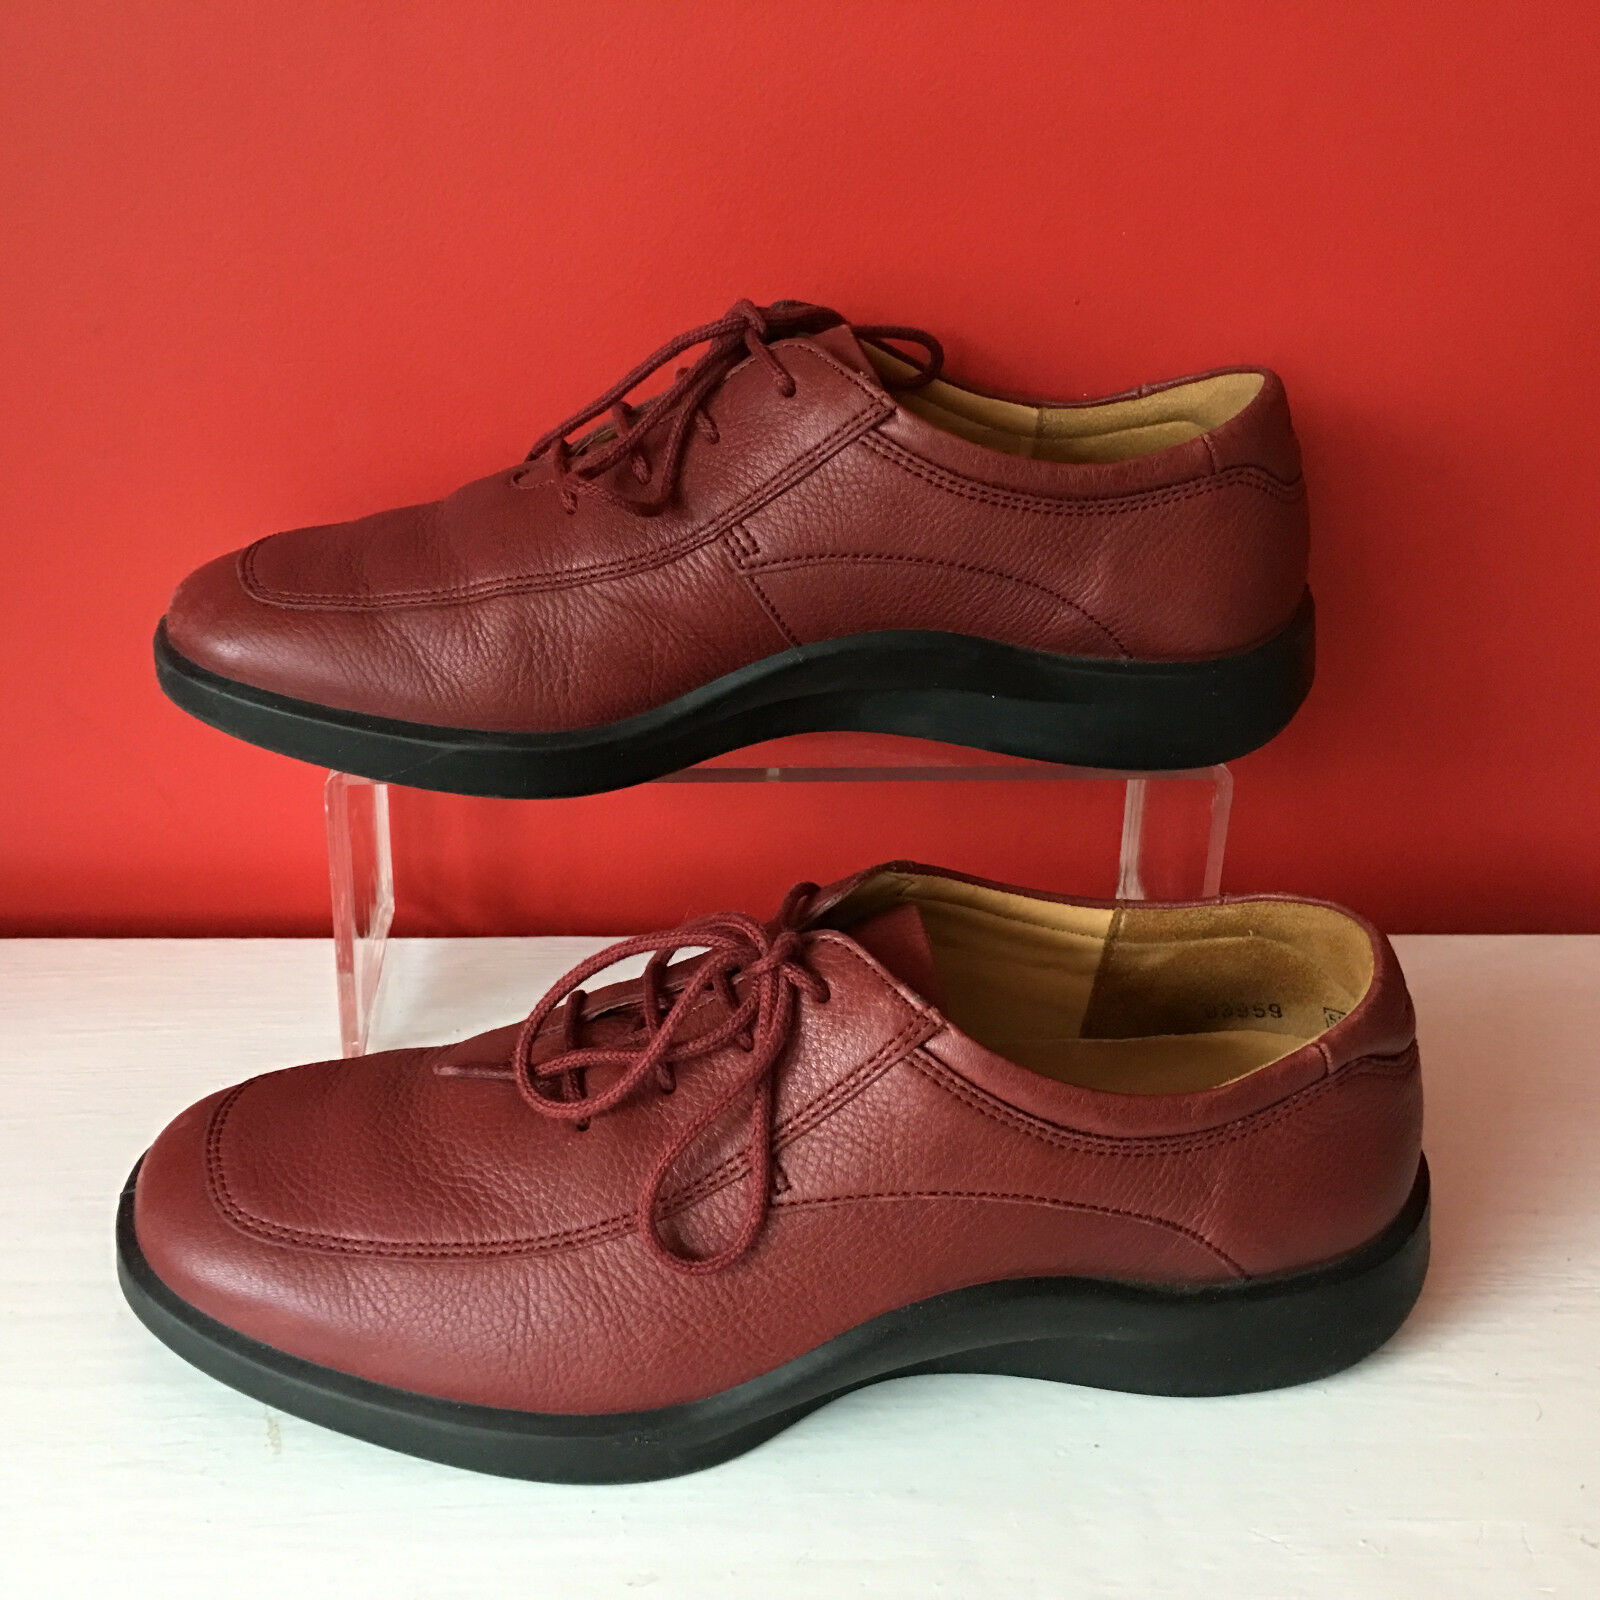 Clarks Lightweight Soft Comfort Red Leather Lace Up shoes Casual Work Size 5.5 D